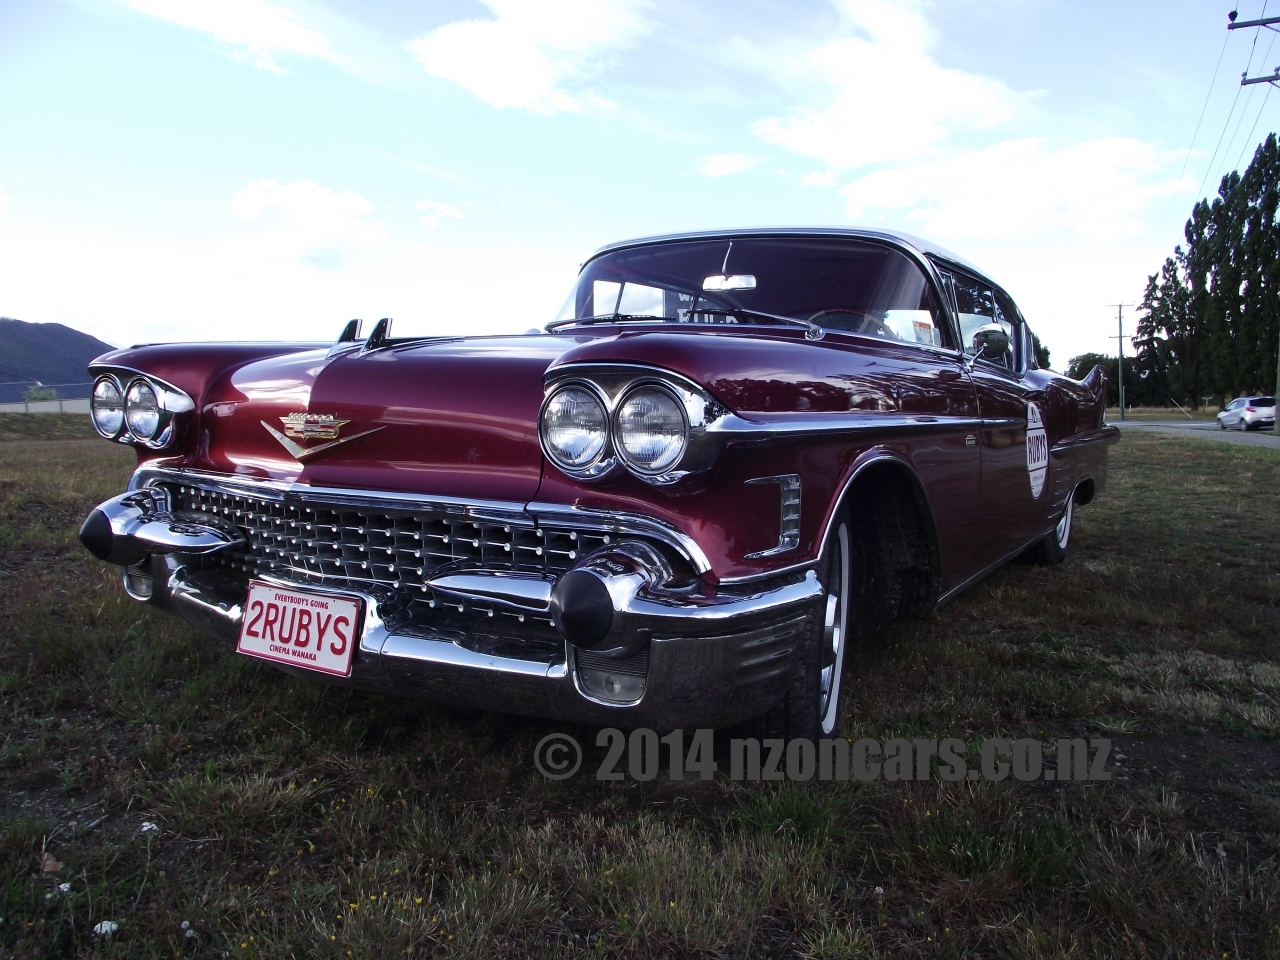 Vintage/Classic Cars | NZ On Cars